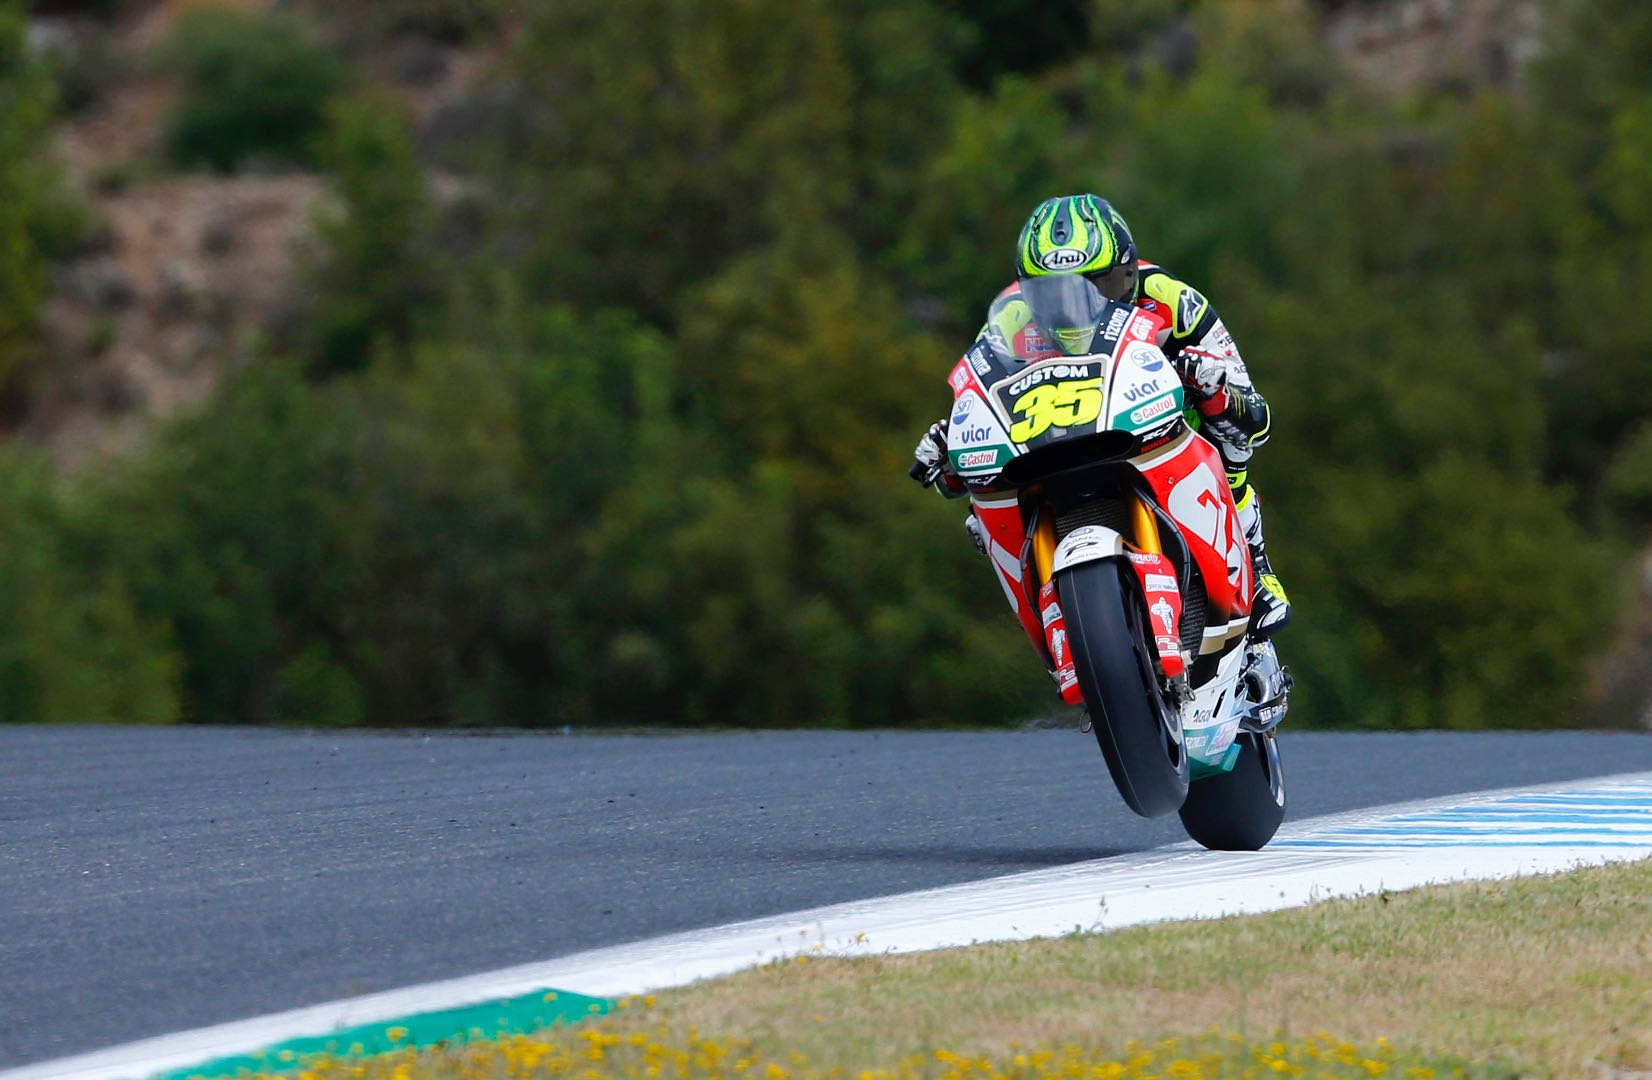 MotoGP Jerez – First day concludes with everyone very close